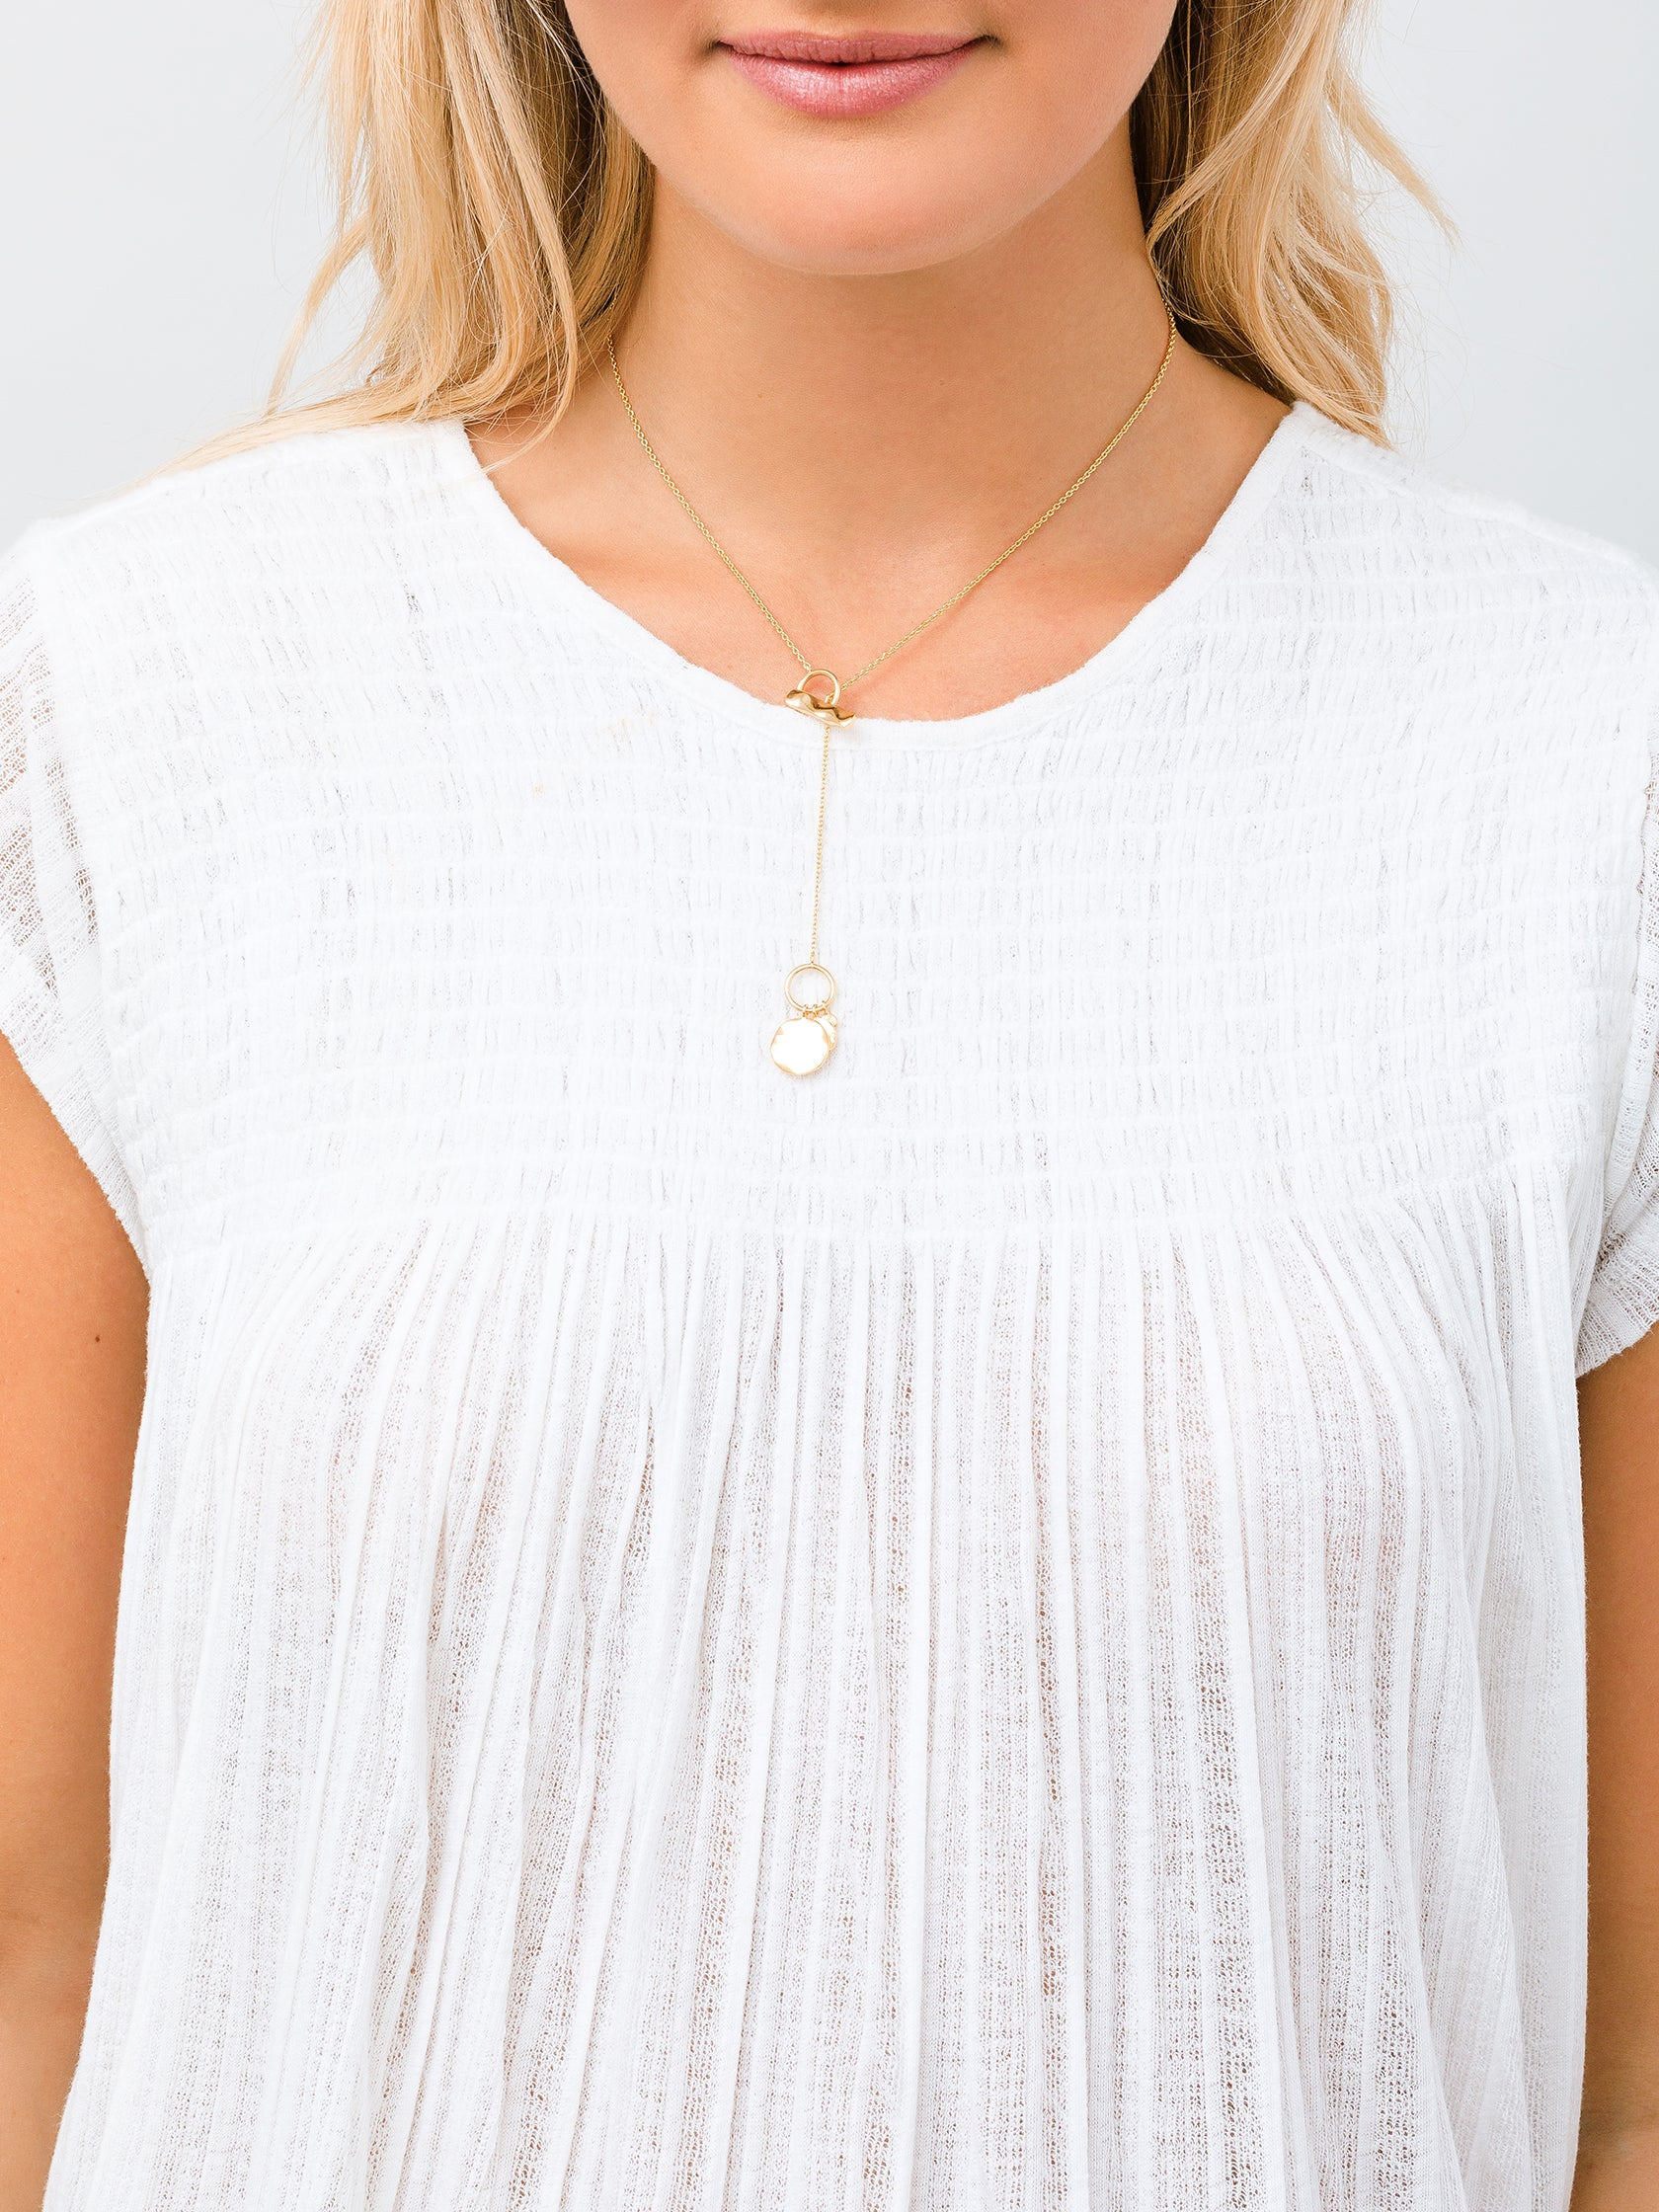 Women wearing a necklace rental from Gorjana called Chloe Small Toggle Versatile Necklace